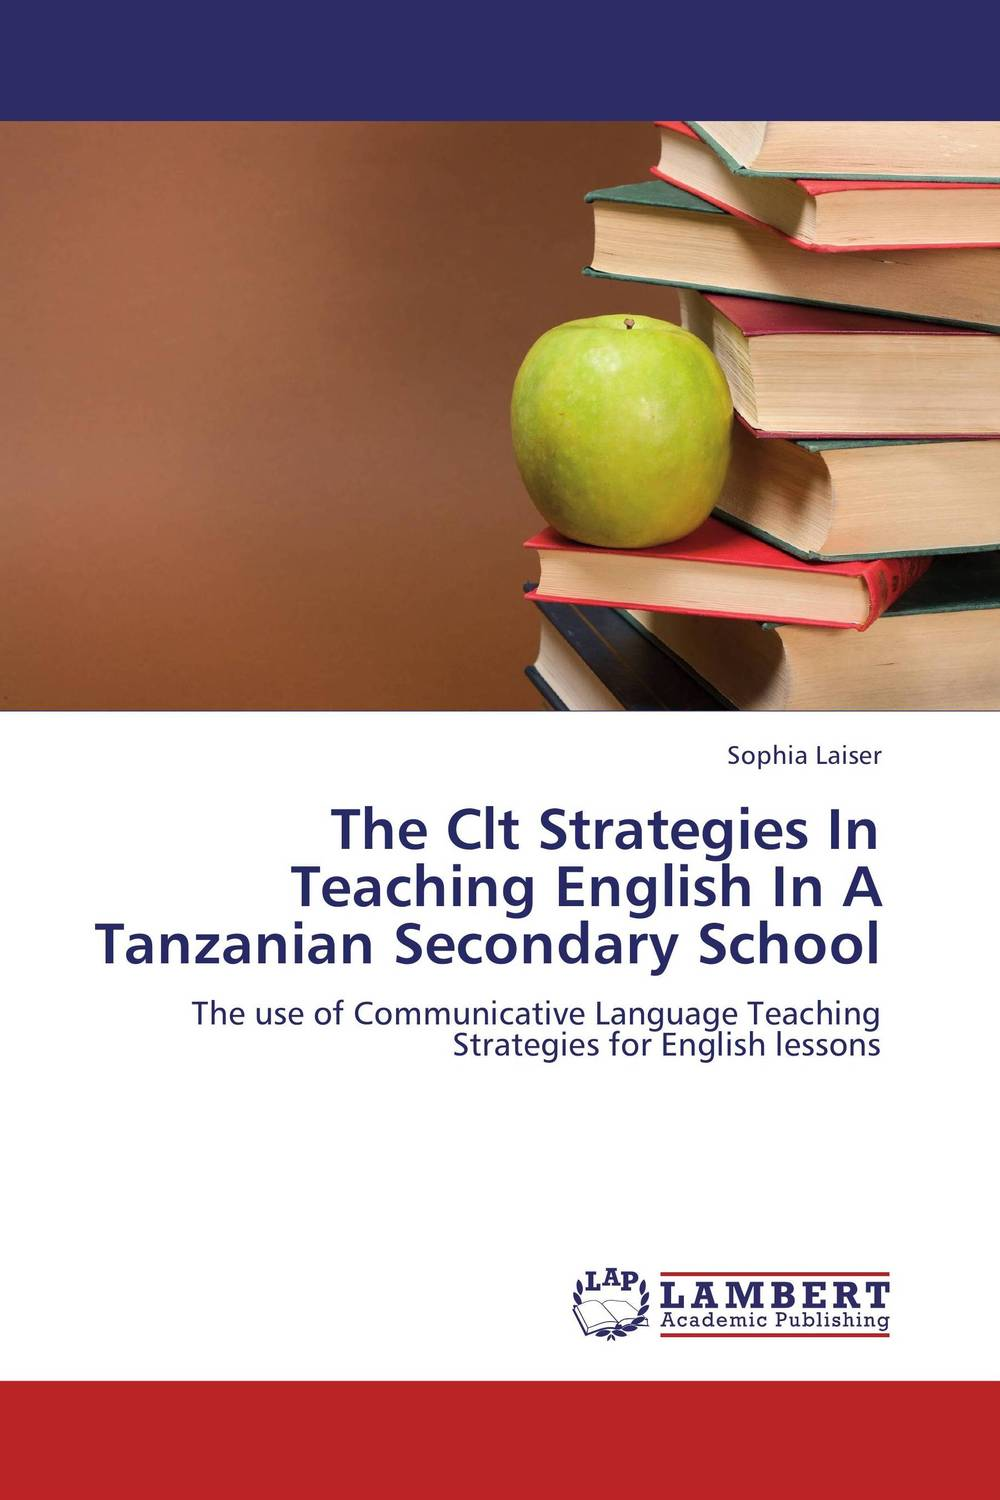 The Clt Strategies In Teaching English In A Tanzanian Secondary School english teachers' attitudes in acquiring grammatical competence